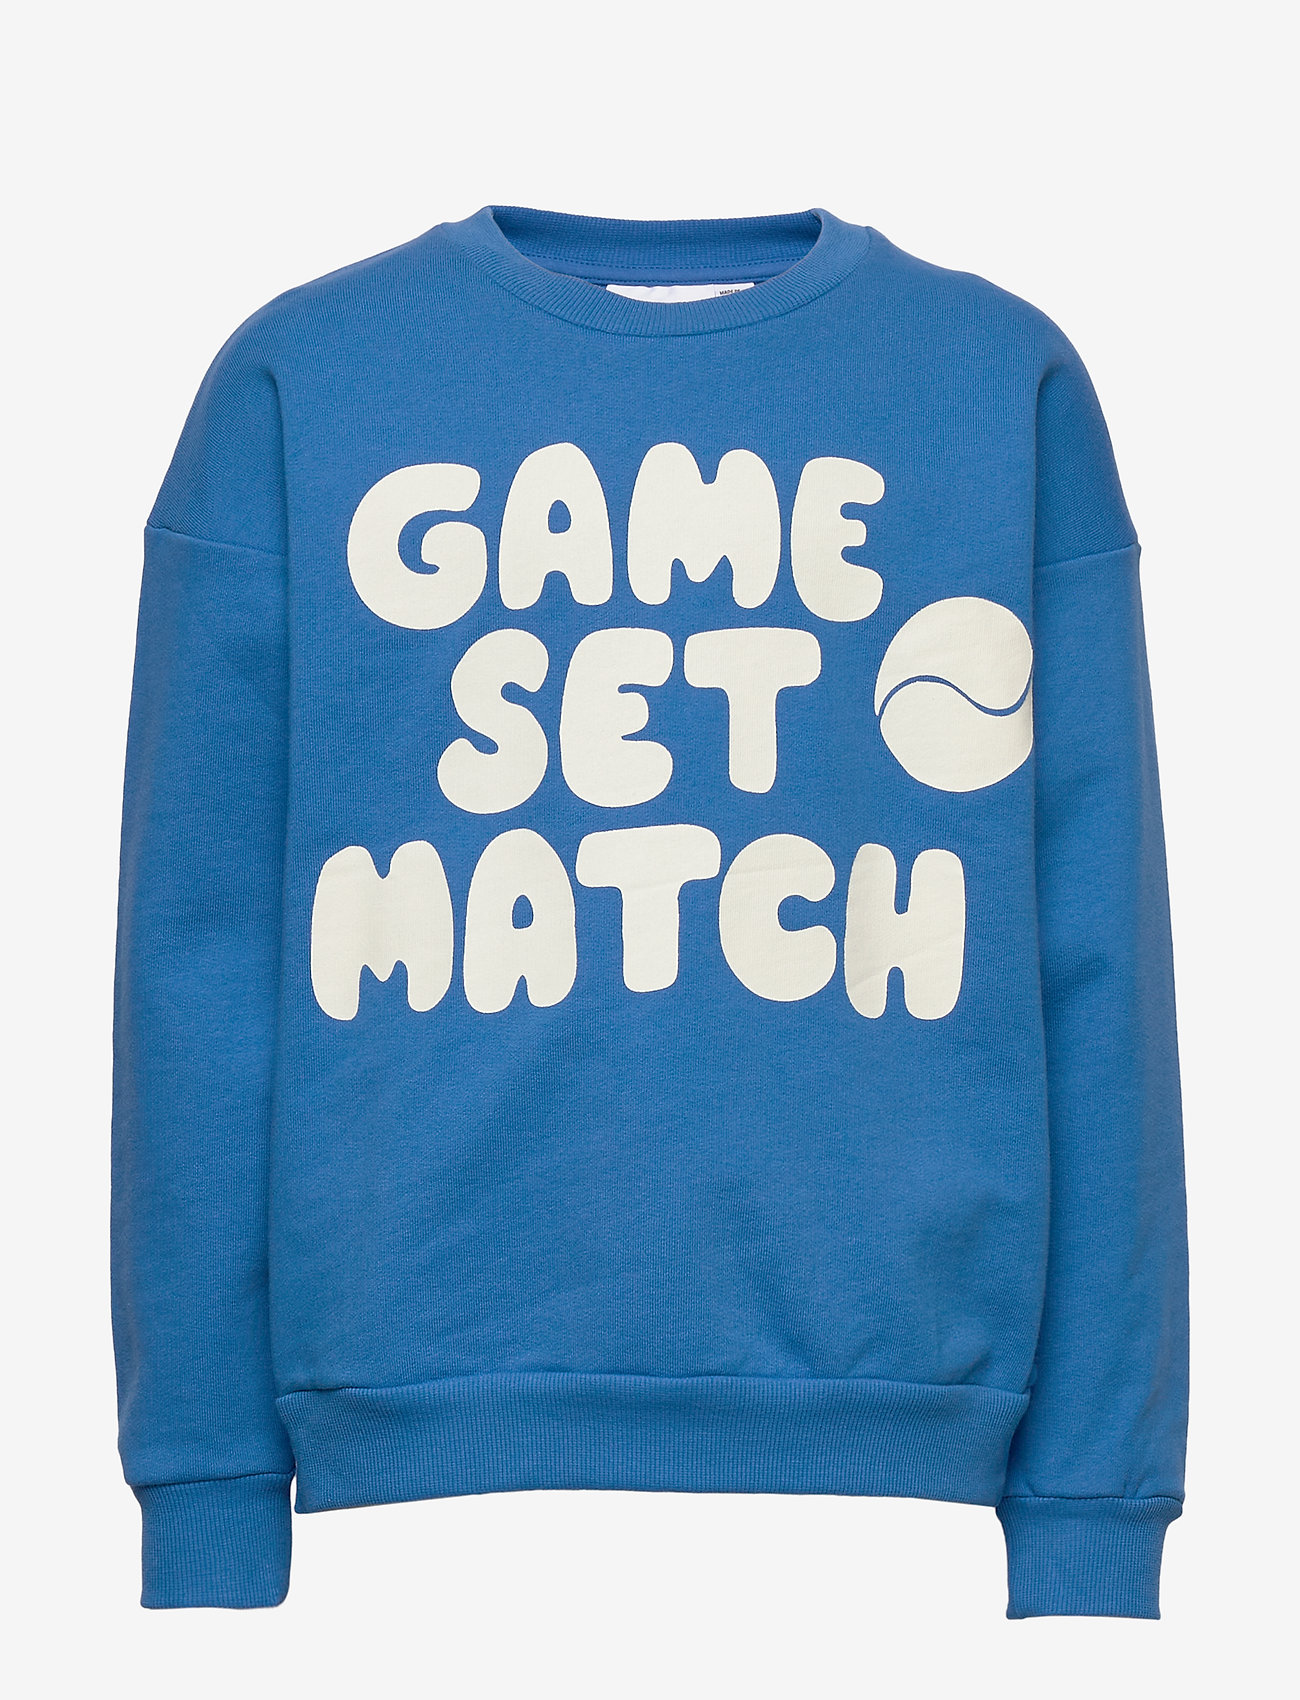 Mini Rodini - Game sp sweatshirt - sweatshirts - blue - 0